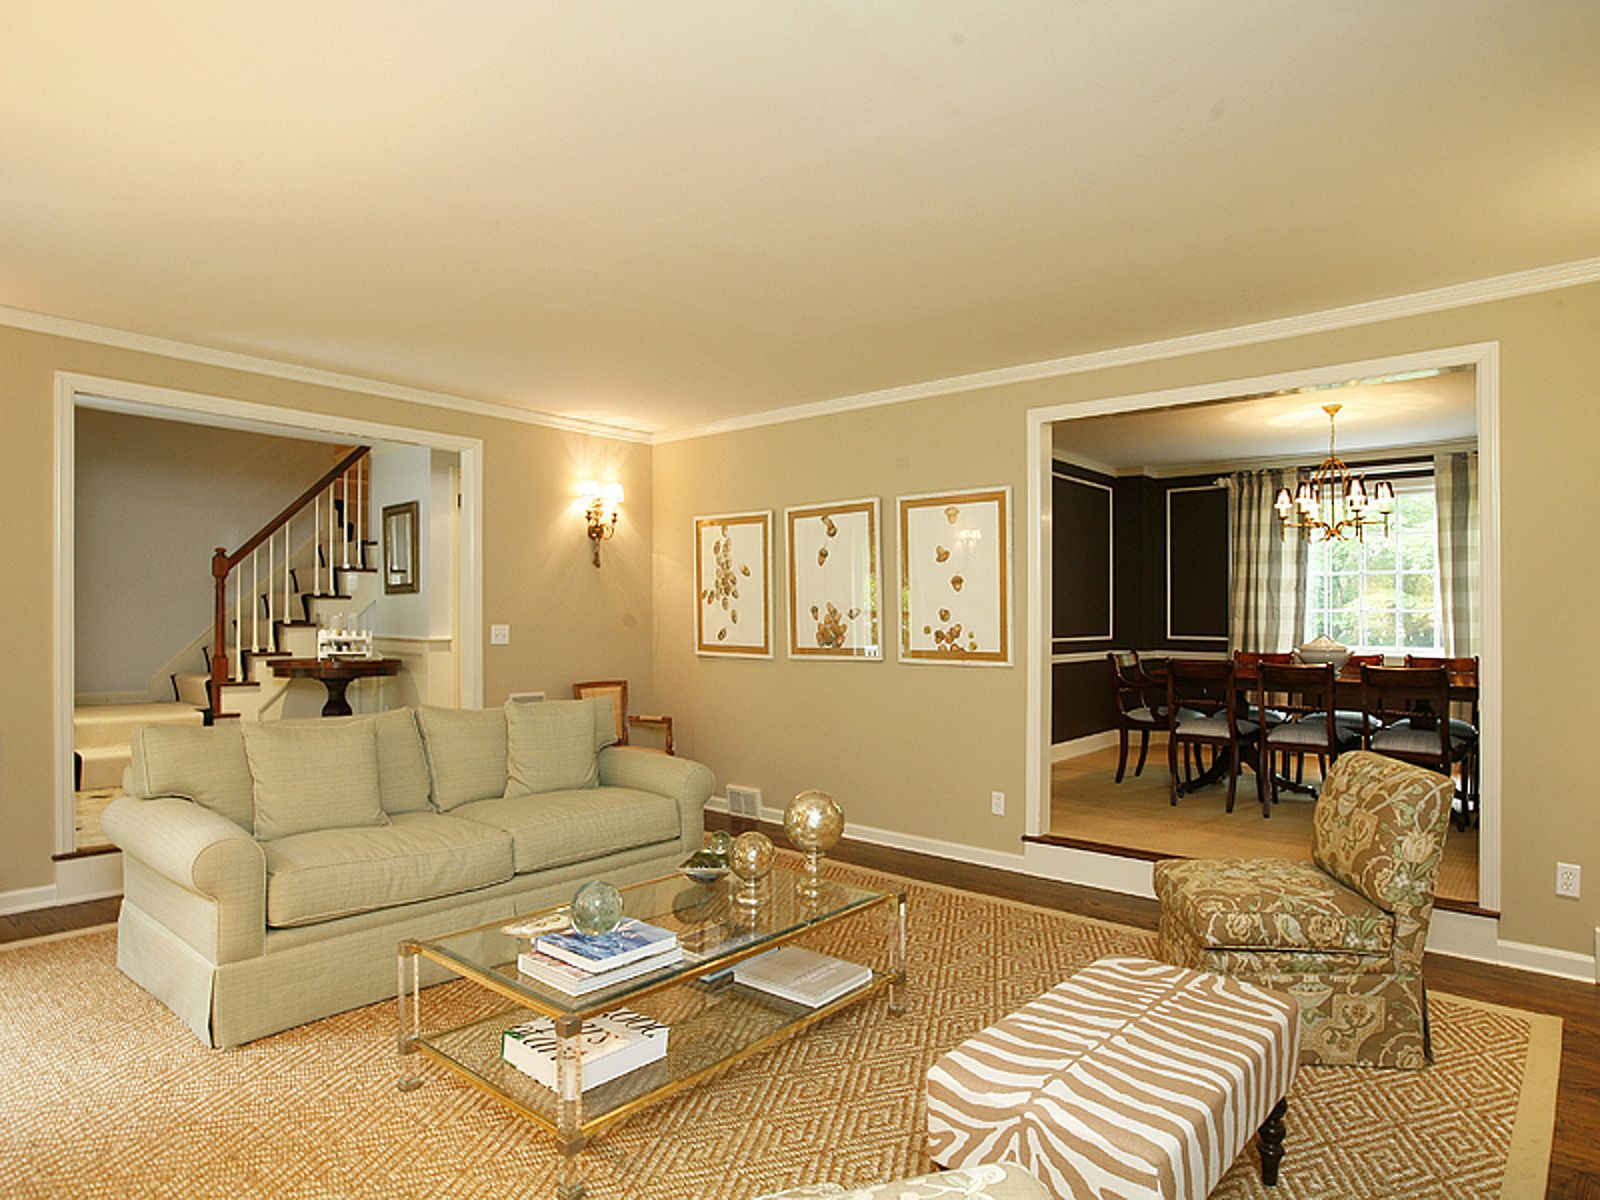 Formal Living Room Ideas  I Like That The Living Room And Dining Room  Appear To Have The Same Rug Color